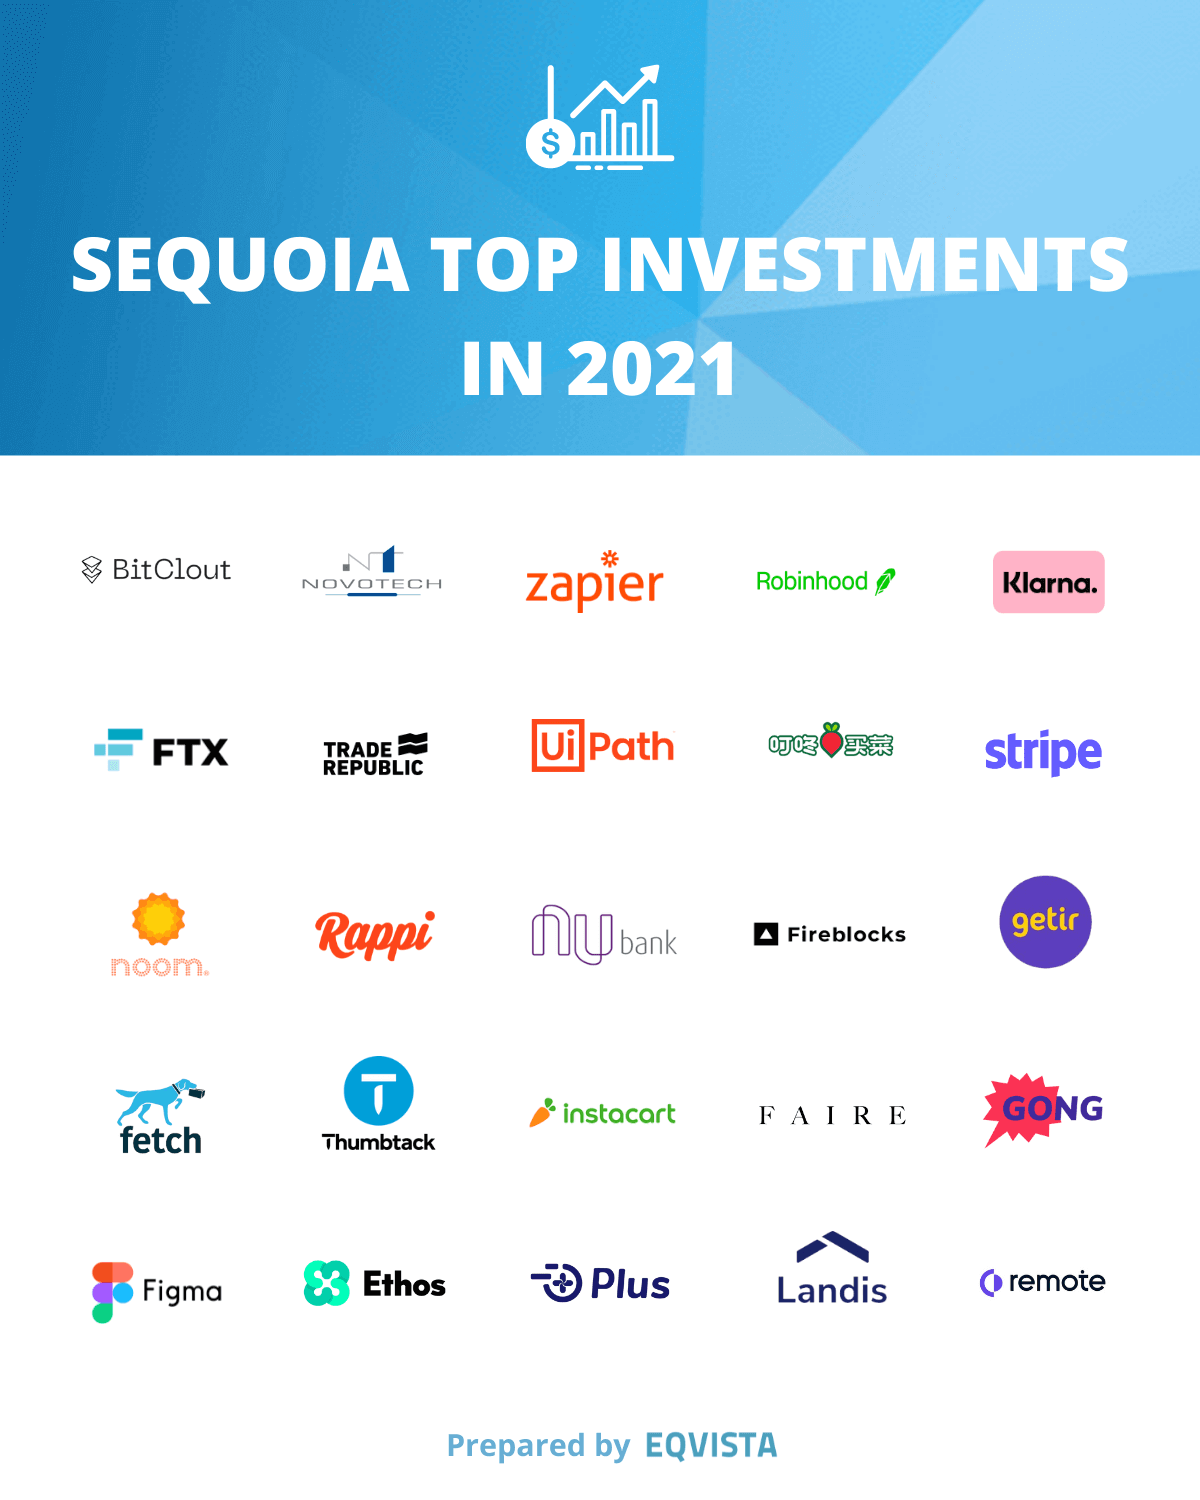 SEQUOIA TOP INVESTMENTS IN 2021